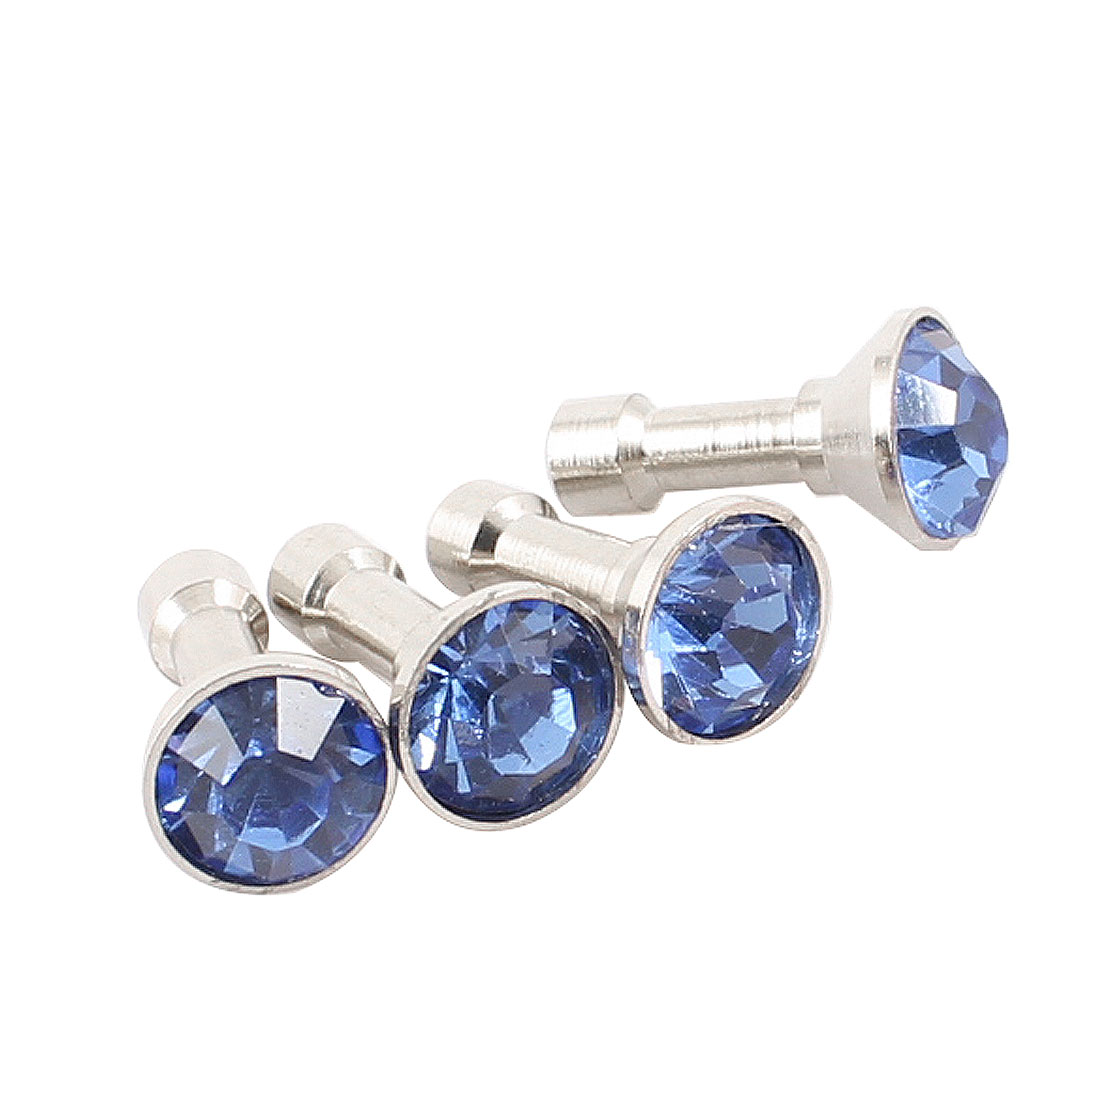 4Pcs Blue Mobile Phone Shiny Rhinestone 3.5mm Anti Dust Earphone Ear Cap Plug